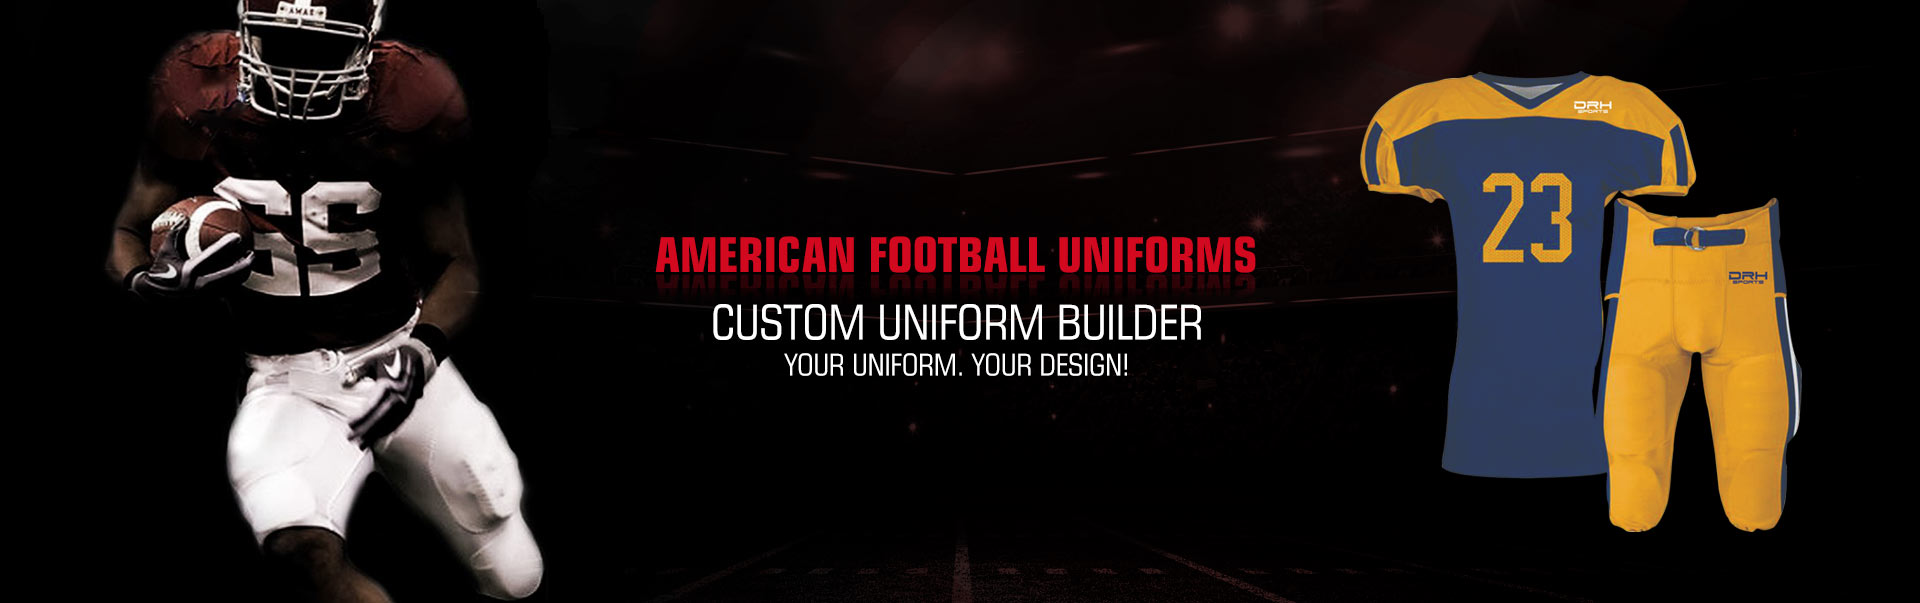 American Football Uniform Wholesaler, Suppliers in Leicester